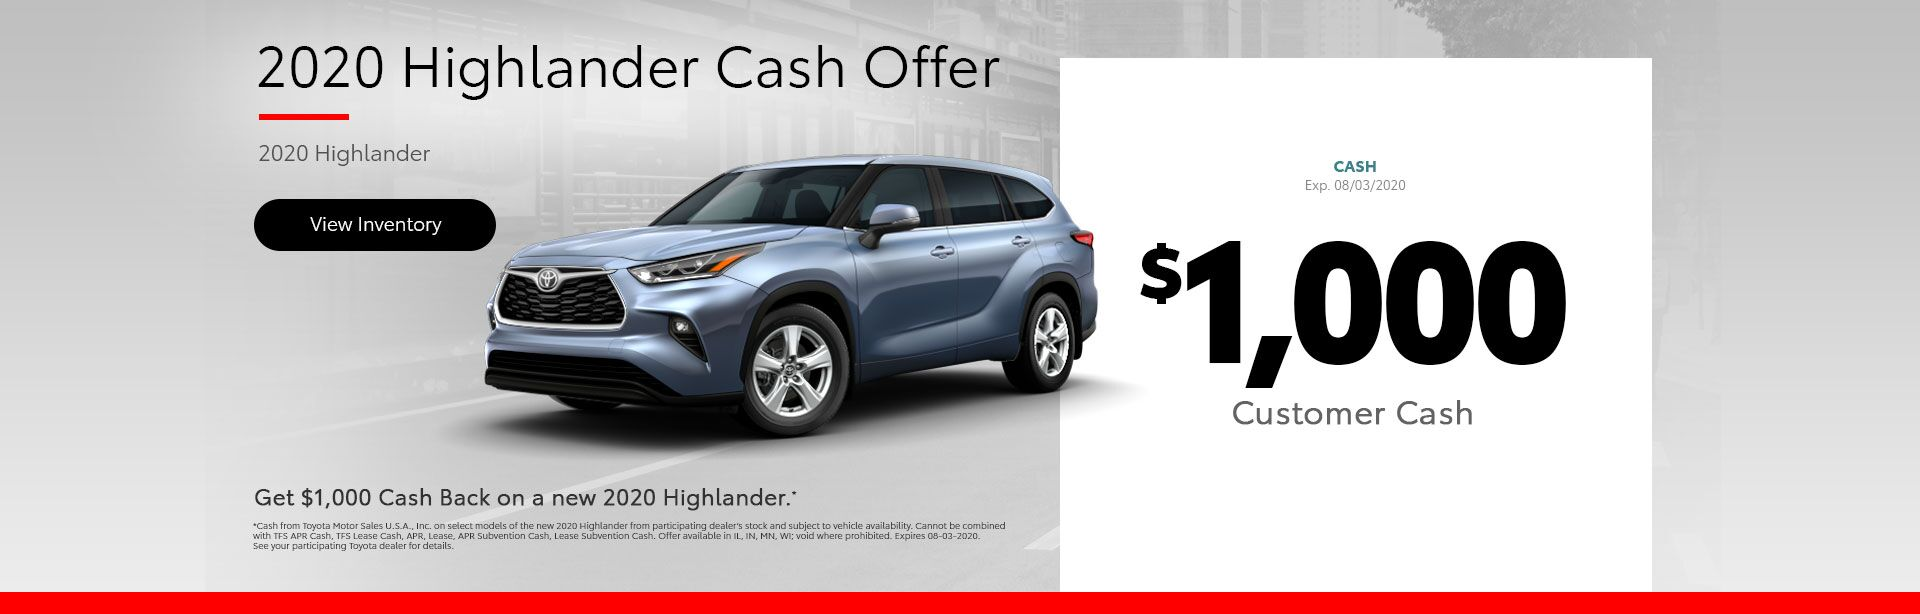 2020 Highlander Cash Offer